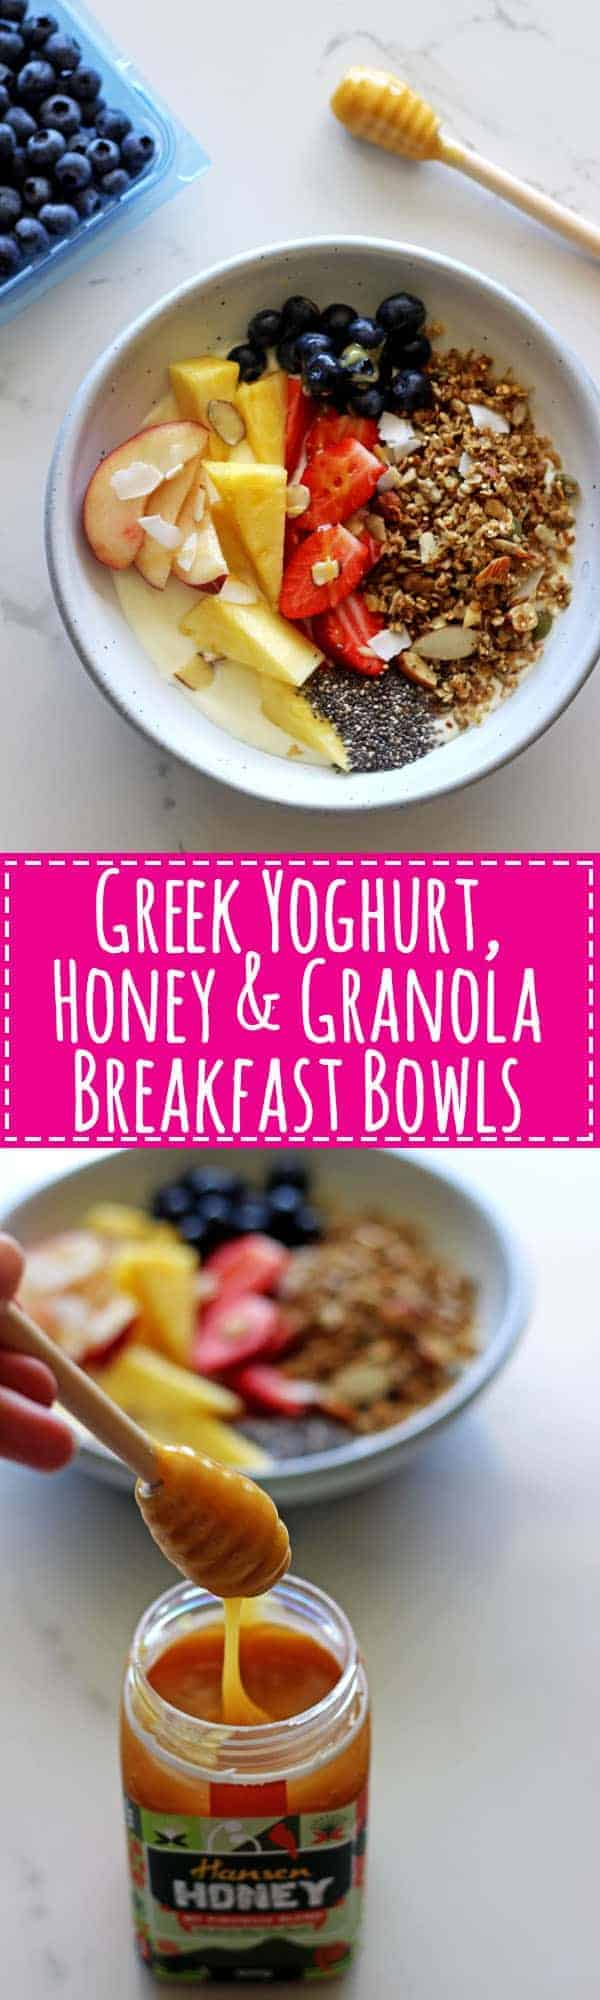 My all time favourite breakfact - Greek yoghurt, honey & granola breakfast bowls with all sorts of extra goodies....it's the only way to start the day! | thekiwicountrygirl.com